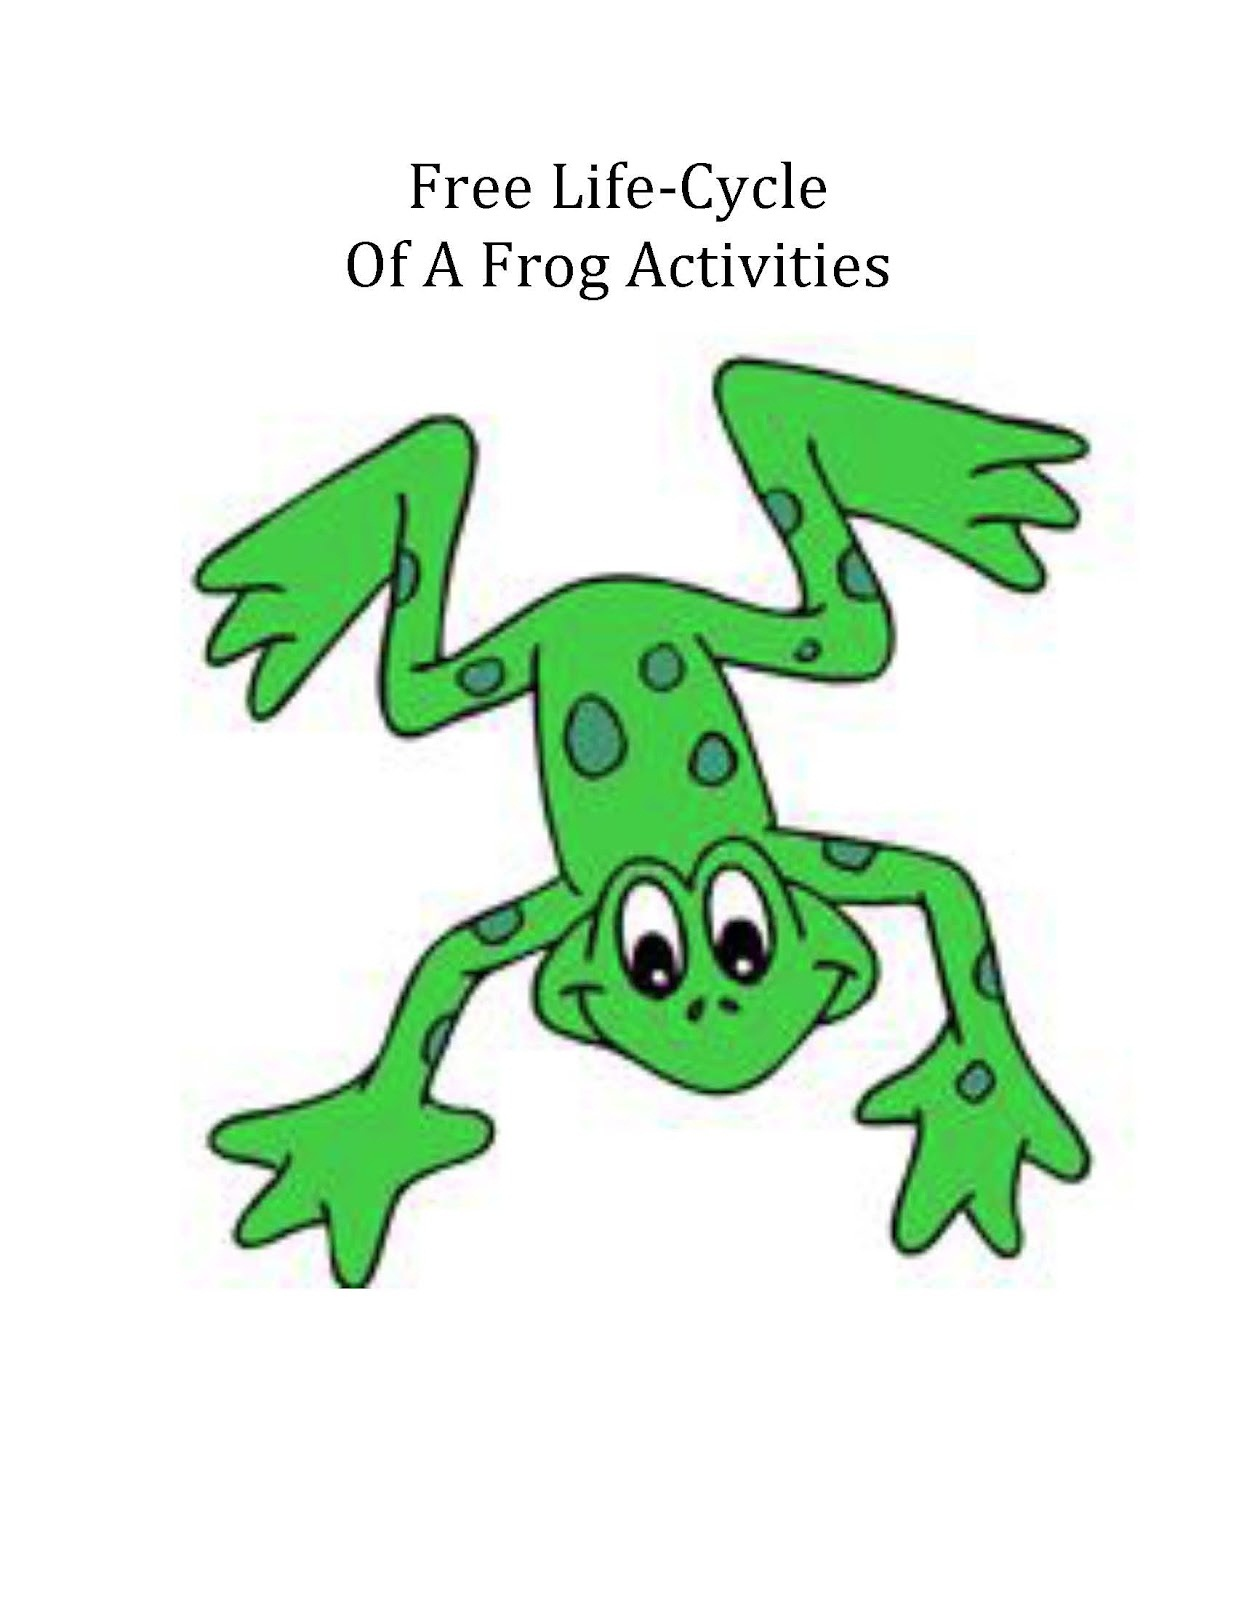 frog-activities-for-kids-teach